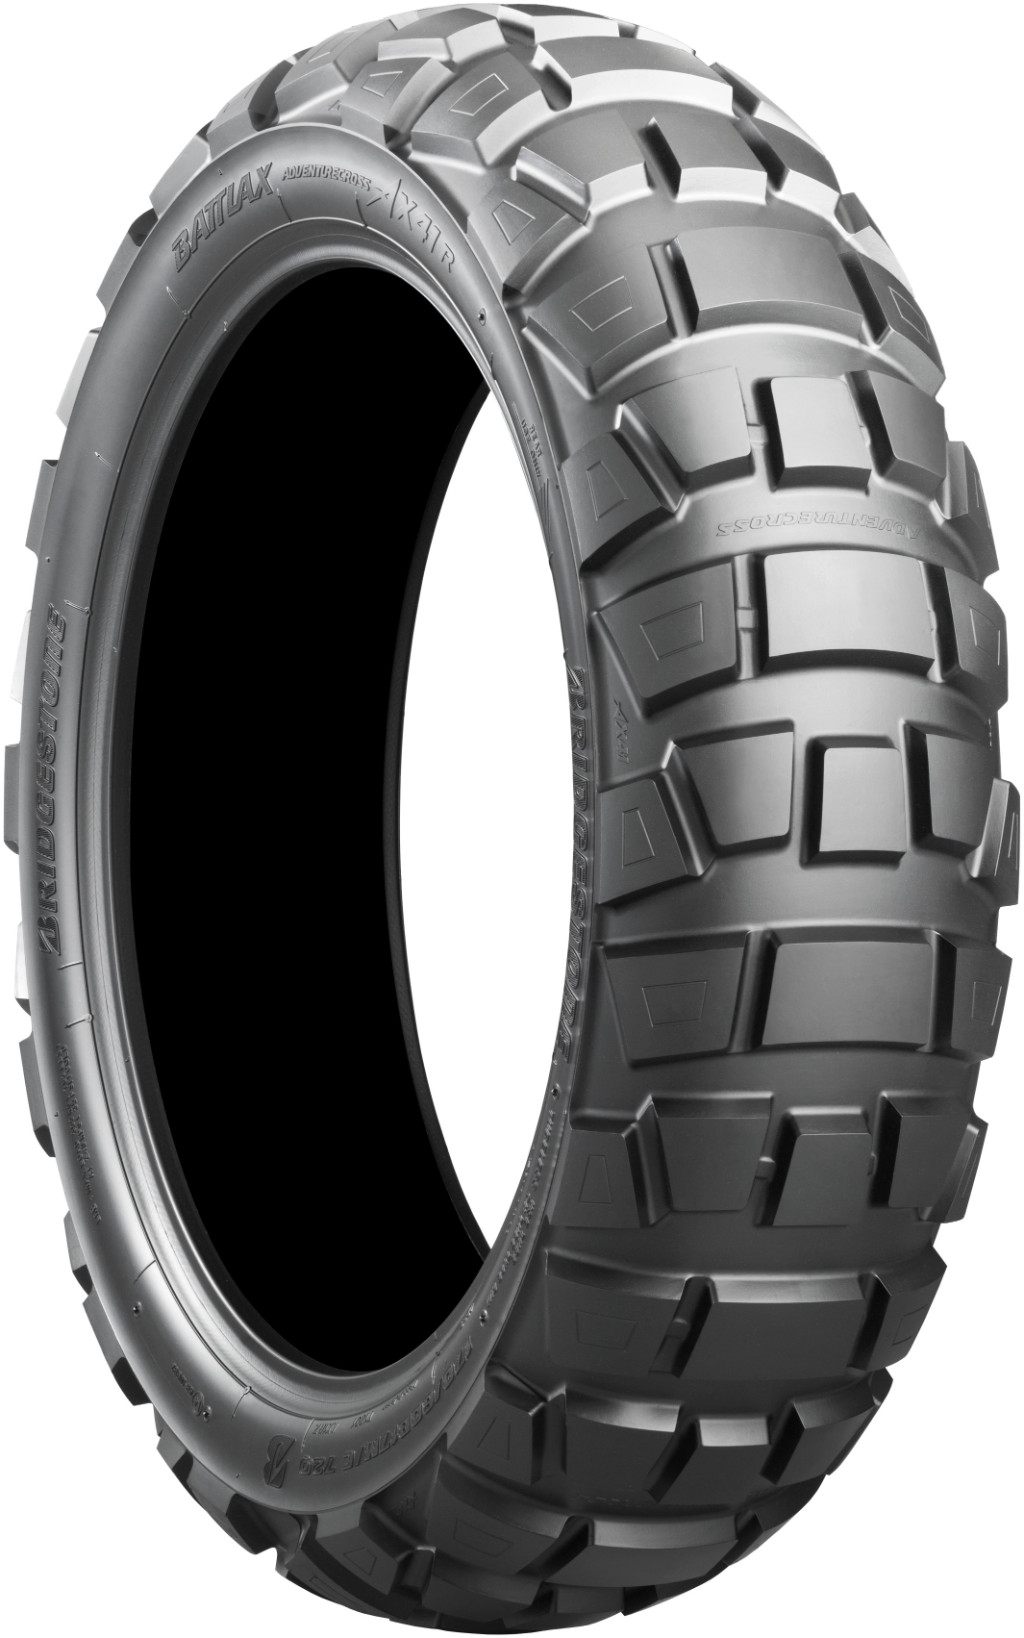 BRIDGESTONE ADVENTURECROSS BATTLAX AX41 [170/60Б 17М/С 72Q] BATTLAX Adventur